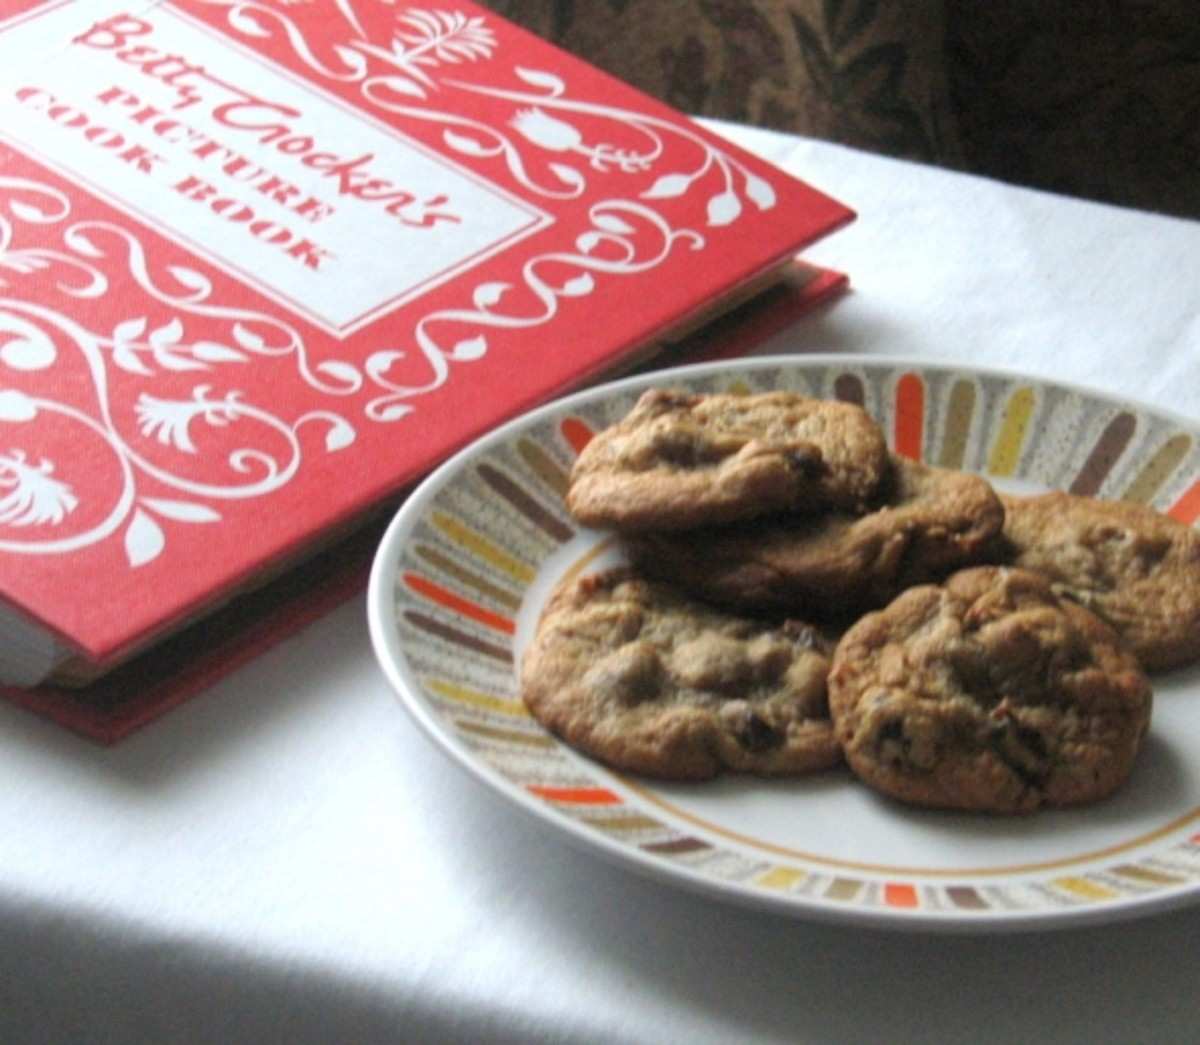 Hermits are based on a vintage cookie recipe.